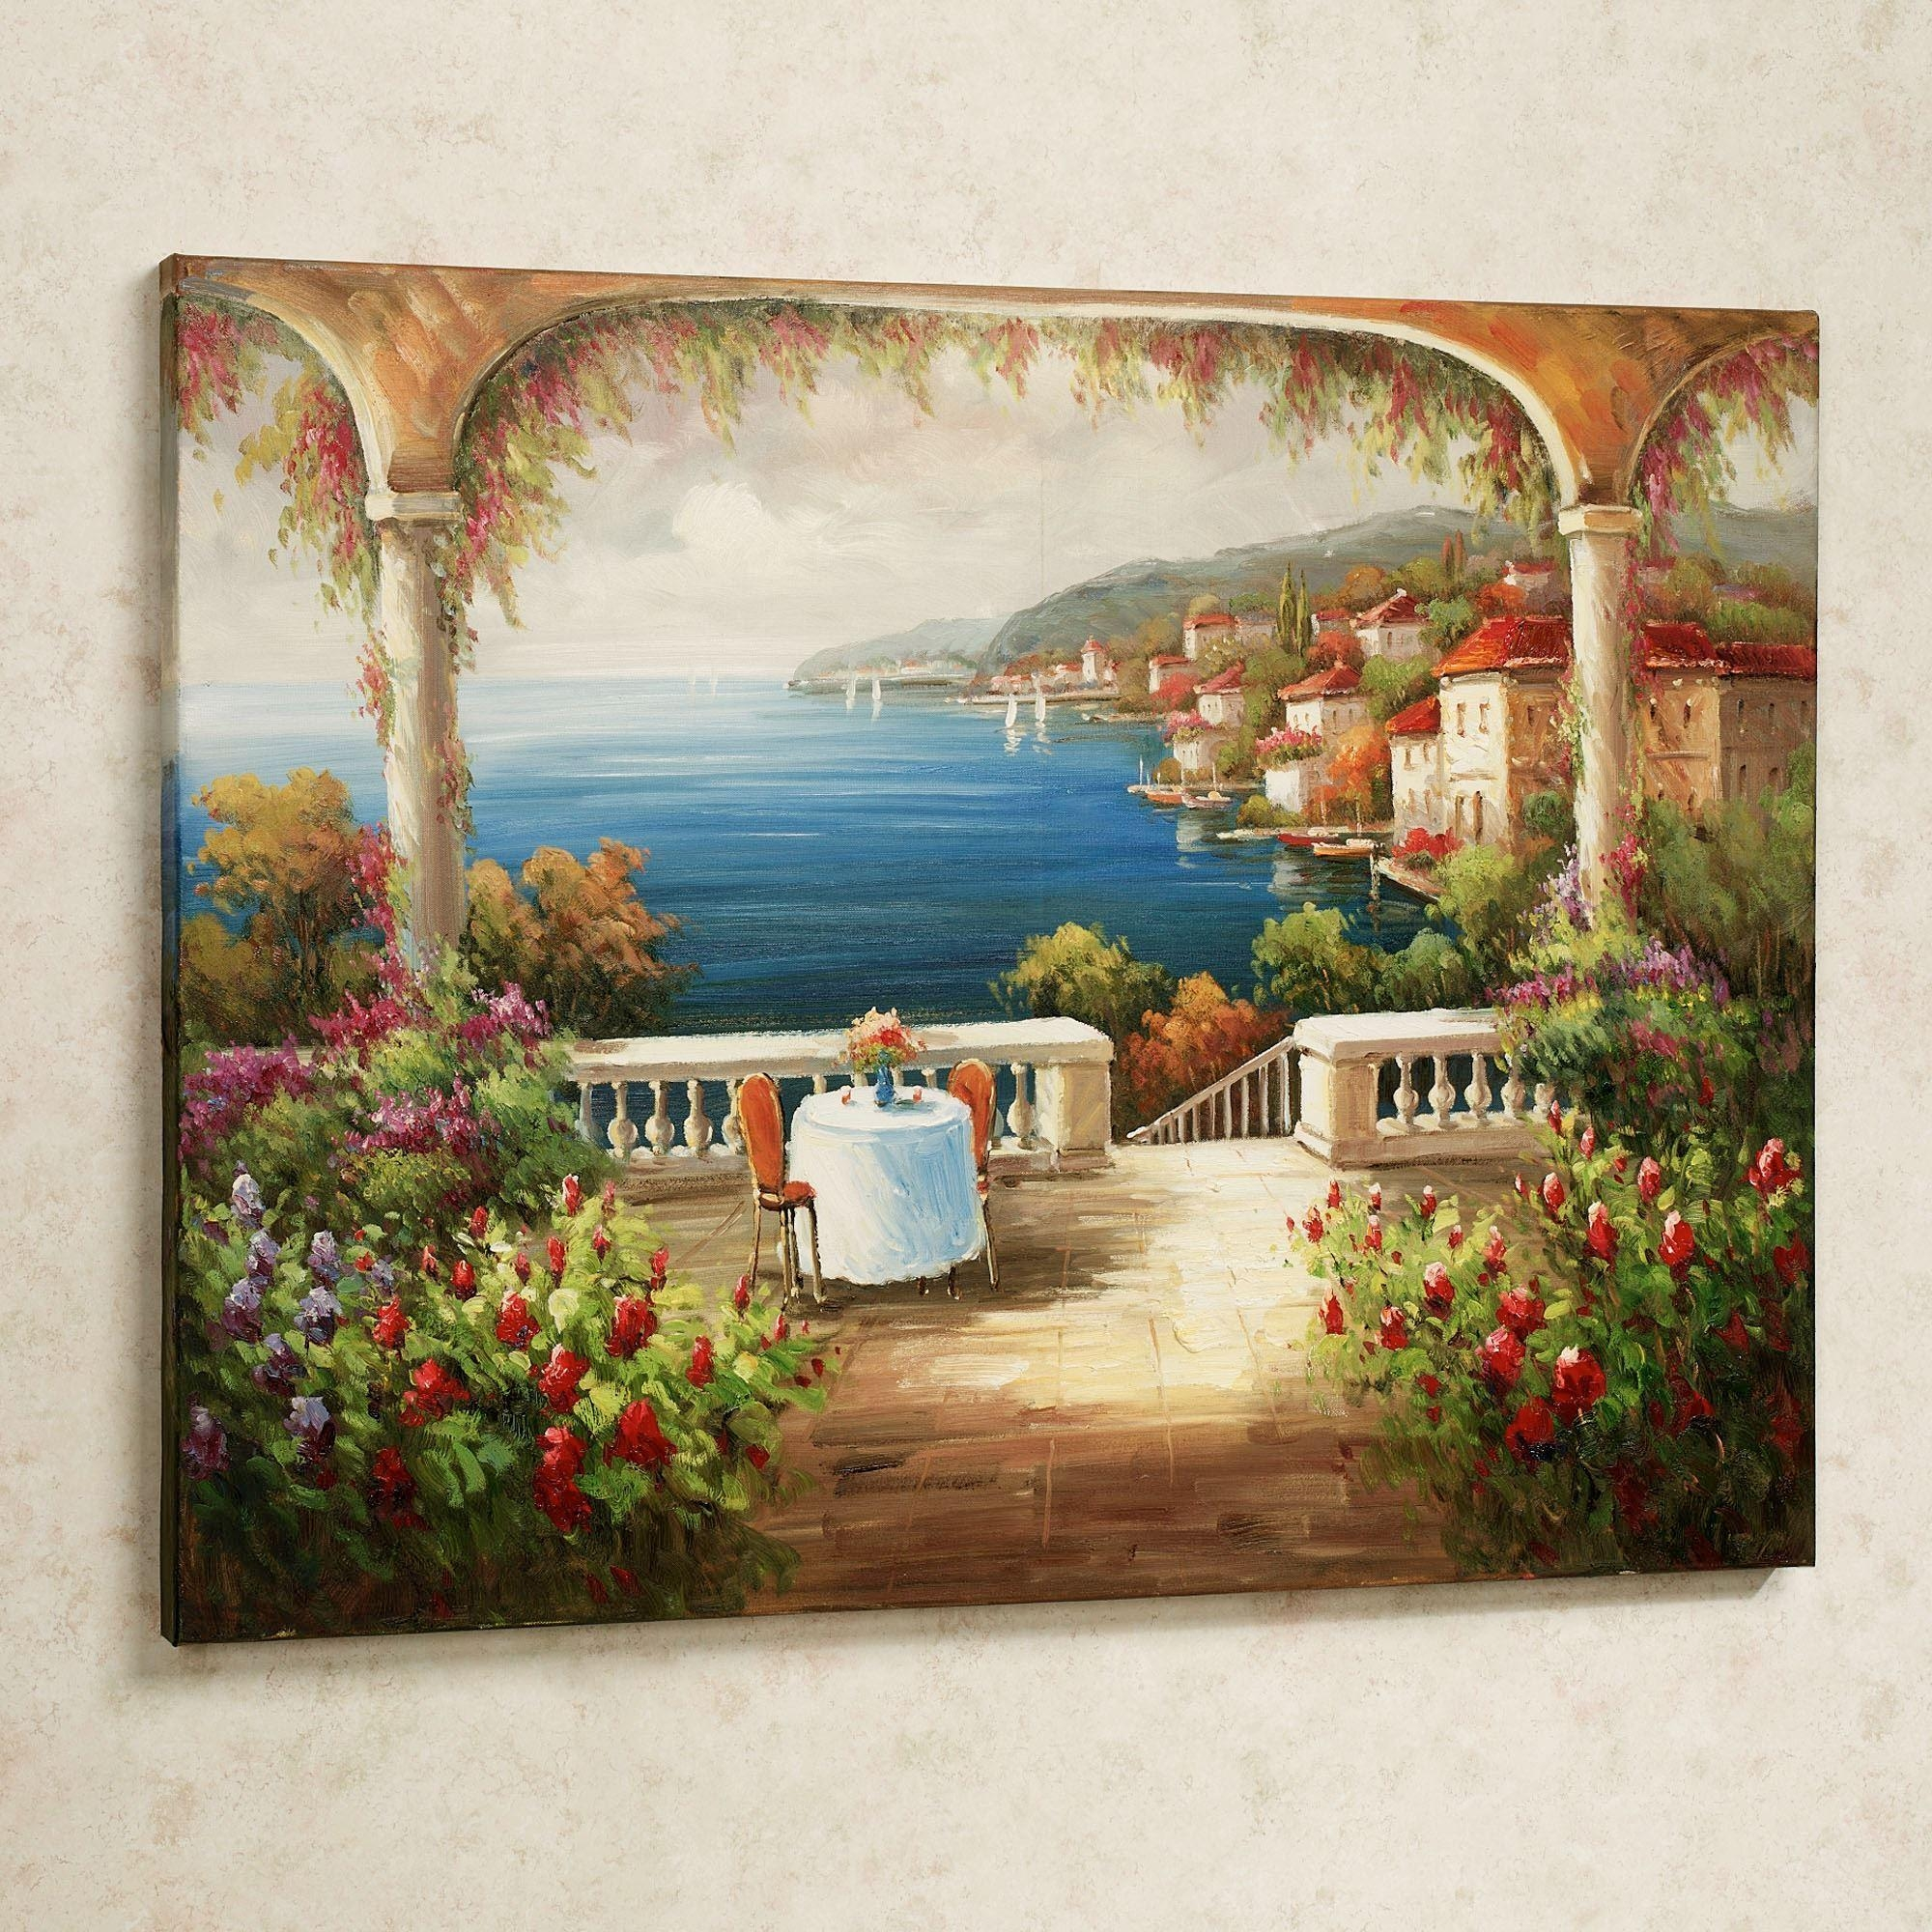 Kitchen : Canvas Prints Wall Art Decor For Living Room Large Throughout Italian Wall Art For Bathroom (View 16 of 20)